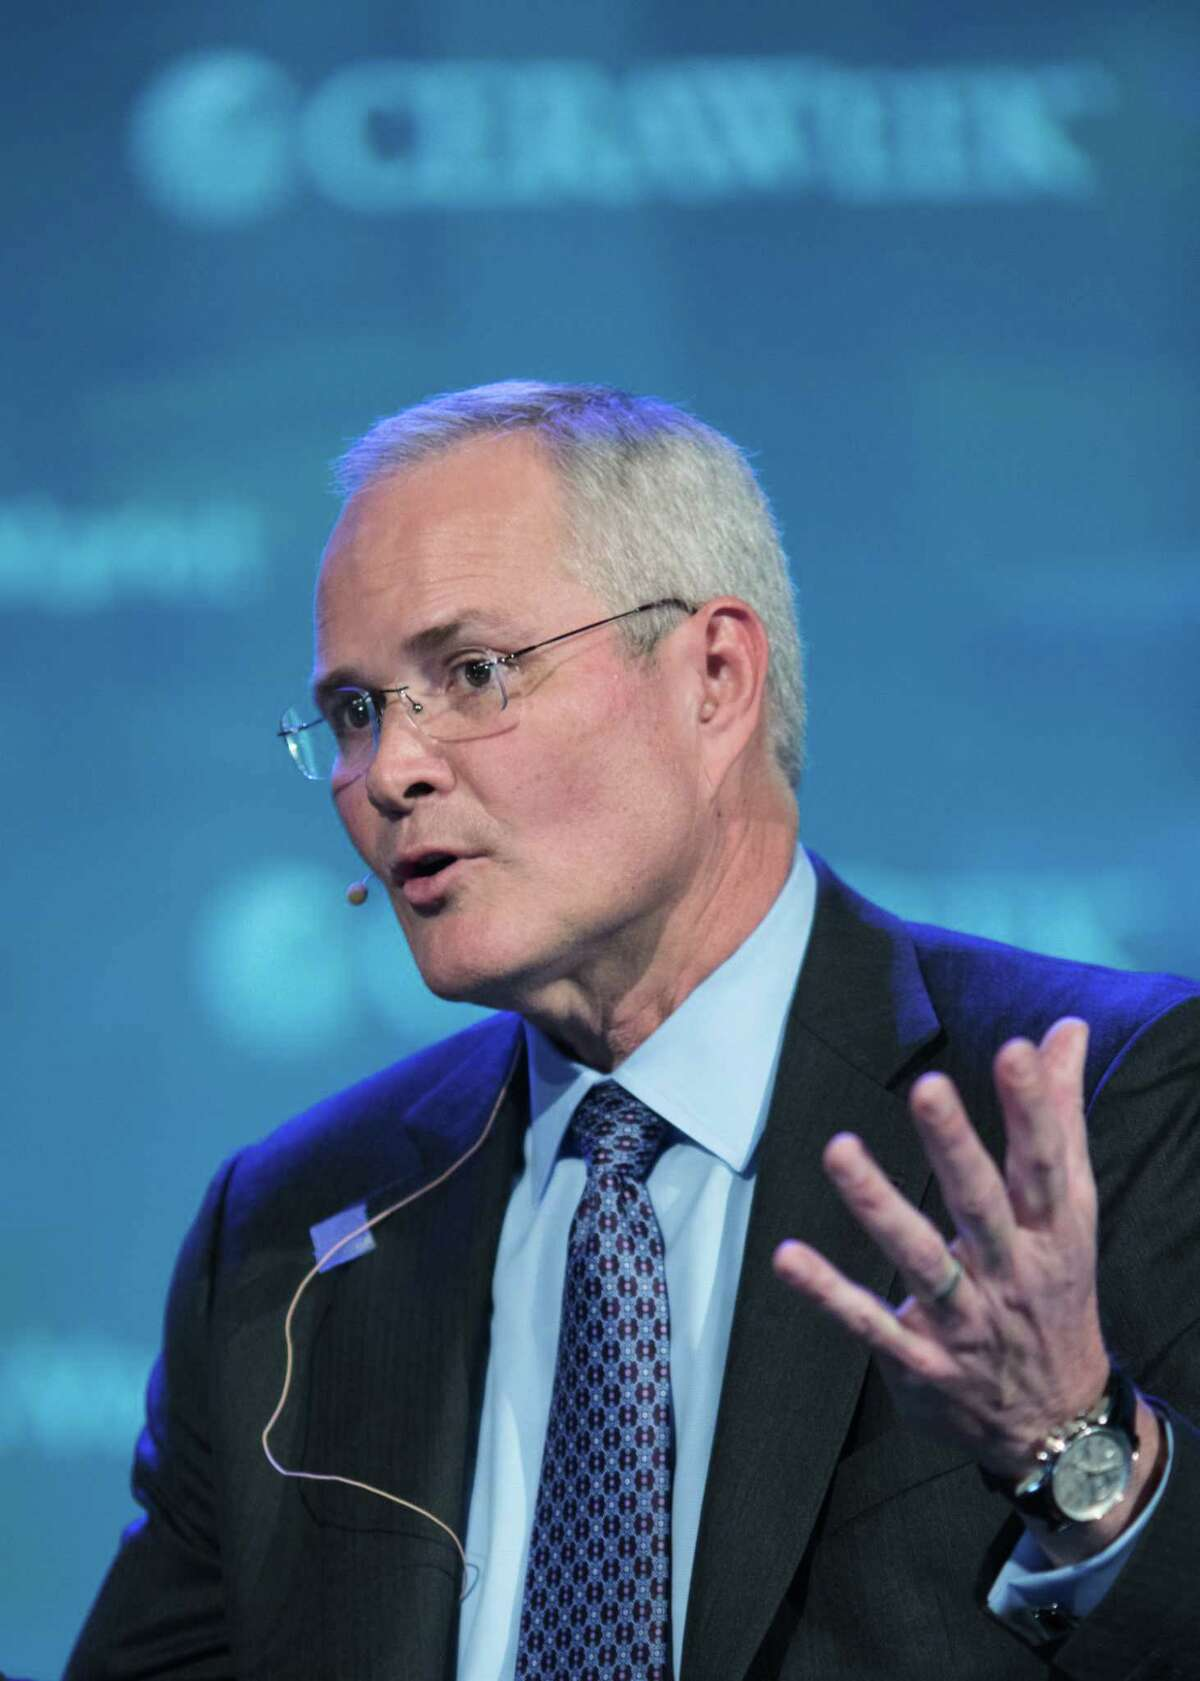 Darren Woods, chairman and chief executive officer of Exxon Mobil Corp., speaks during the 2017 IHS CERAWeek conference in Houston, U.S., on Monday, March 6, 2017. CERAWeek gathers energy industry leaders, experts, government officials and policymakers, leaders from the technology, financial, and industrial communities to provide new insights and critically-important dialogue on energy markets. Photographer: F. Carter Smith/Bloomberg